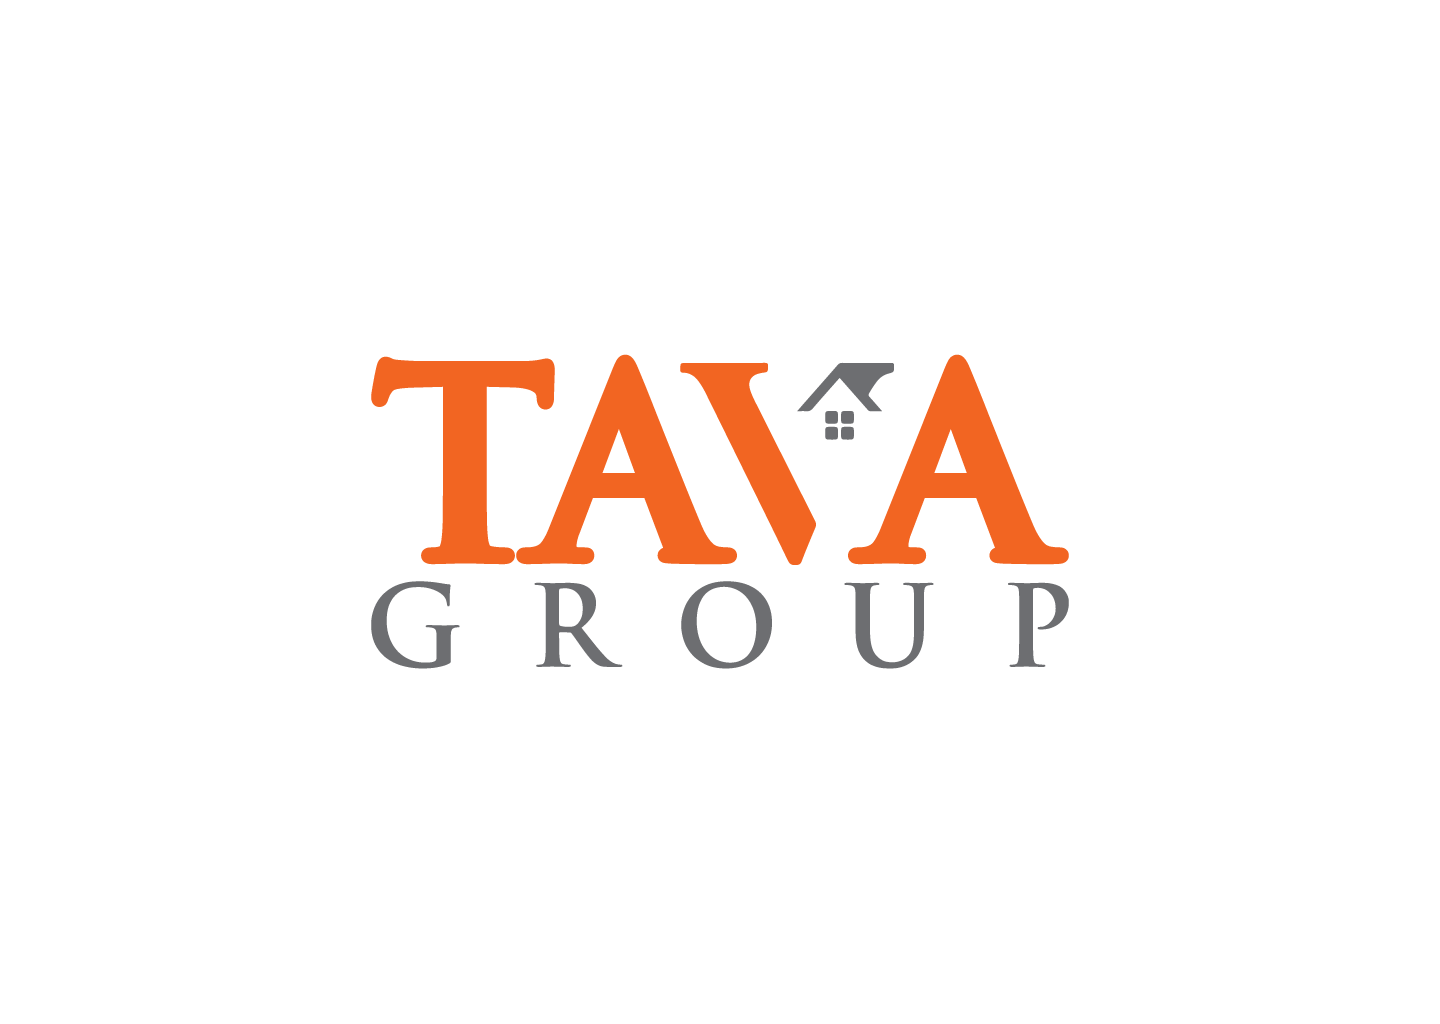 Logo Design by Mohidul Islam - Entry No. 194 in the Logo Design Contest Creative Logo Design for Tava Group.